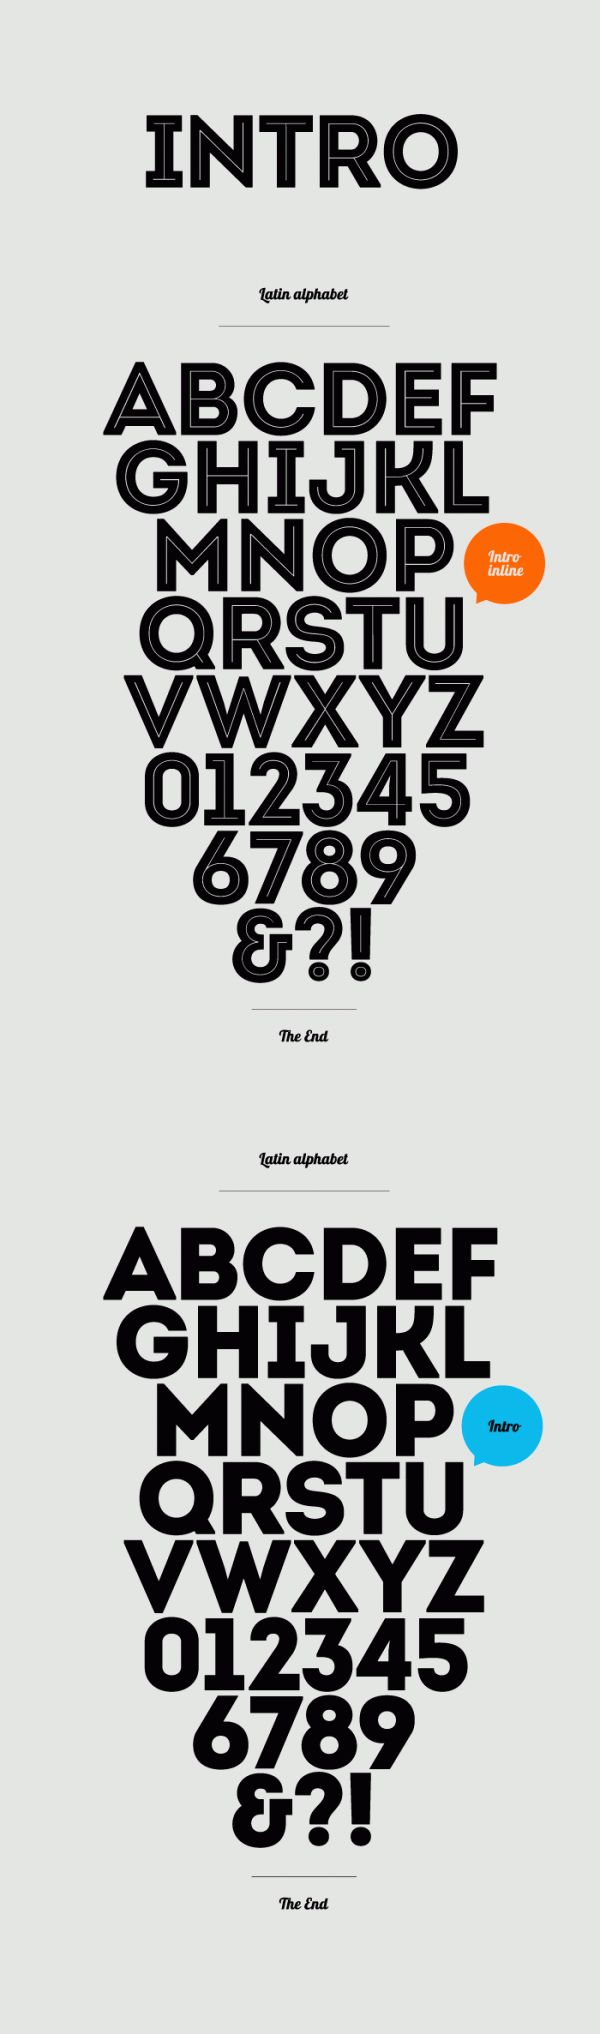 """Free font  Intro by Fontfabric Type Foundry  What distinguishes the new Intro free font from FontFabric is the strongly expressed geometric makeup and structure. The basic letters of the Alphabet like """"A"""", """"O"""" and """"H"""" are built or based on principles of simple geometric forms – triangles, circles and squares.  In contrast to the Futura font which possesses similar styling, the Intro font preserves the characteristic sharpened edges of the """"А"""", """"V"""" and """"W"""" letters even in it's boldened form."""